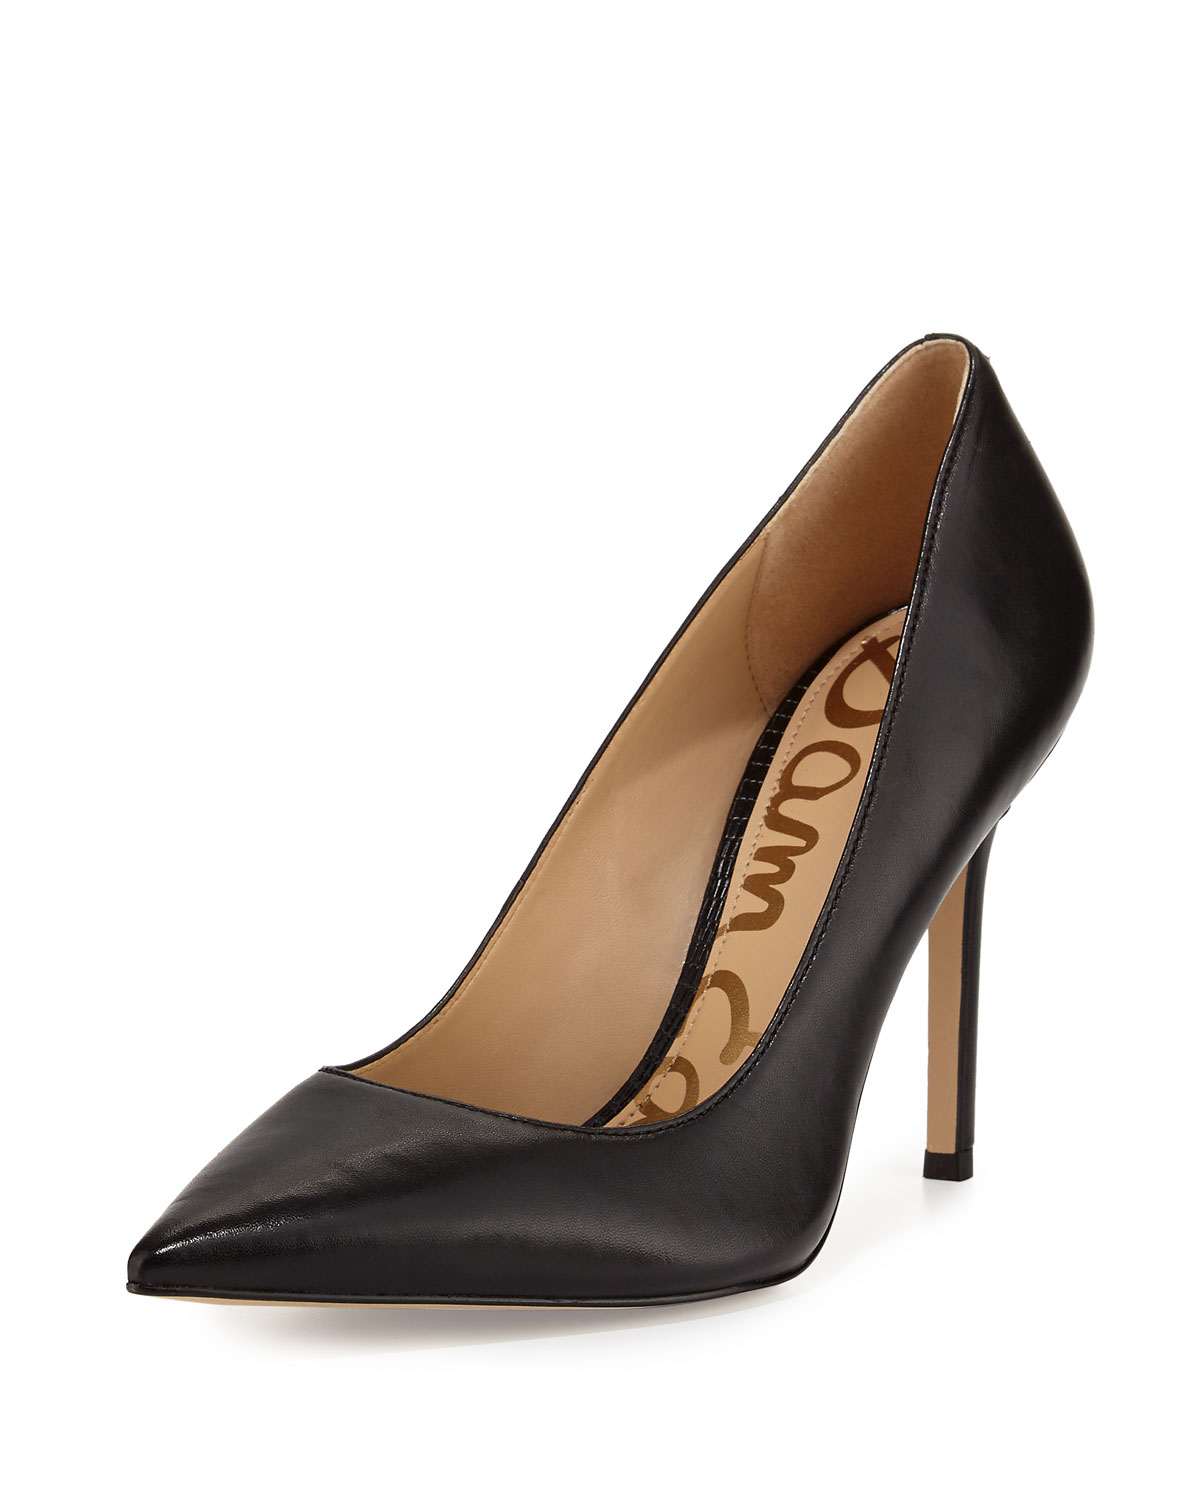 d0e9fe7a5e Sam Edelman Hazel Pointed-Toe Leather Pumps, Black | Neiman Marcus